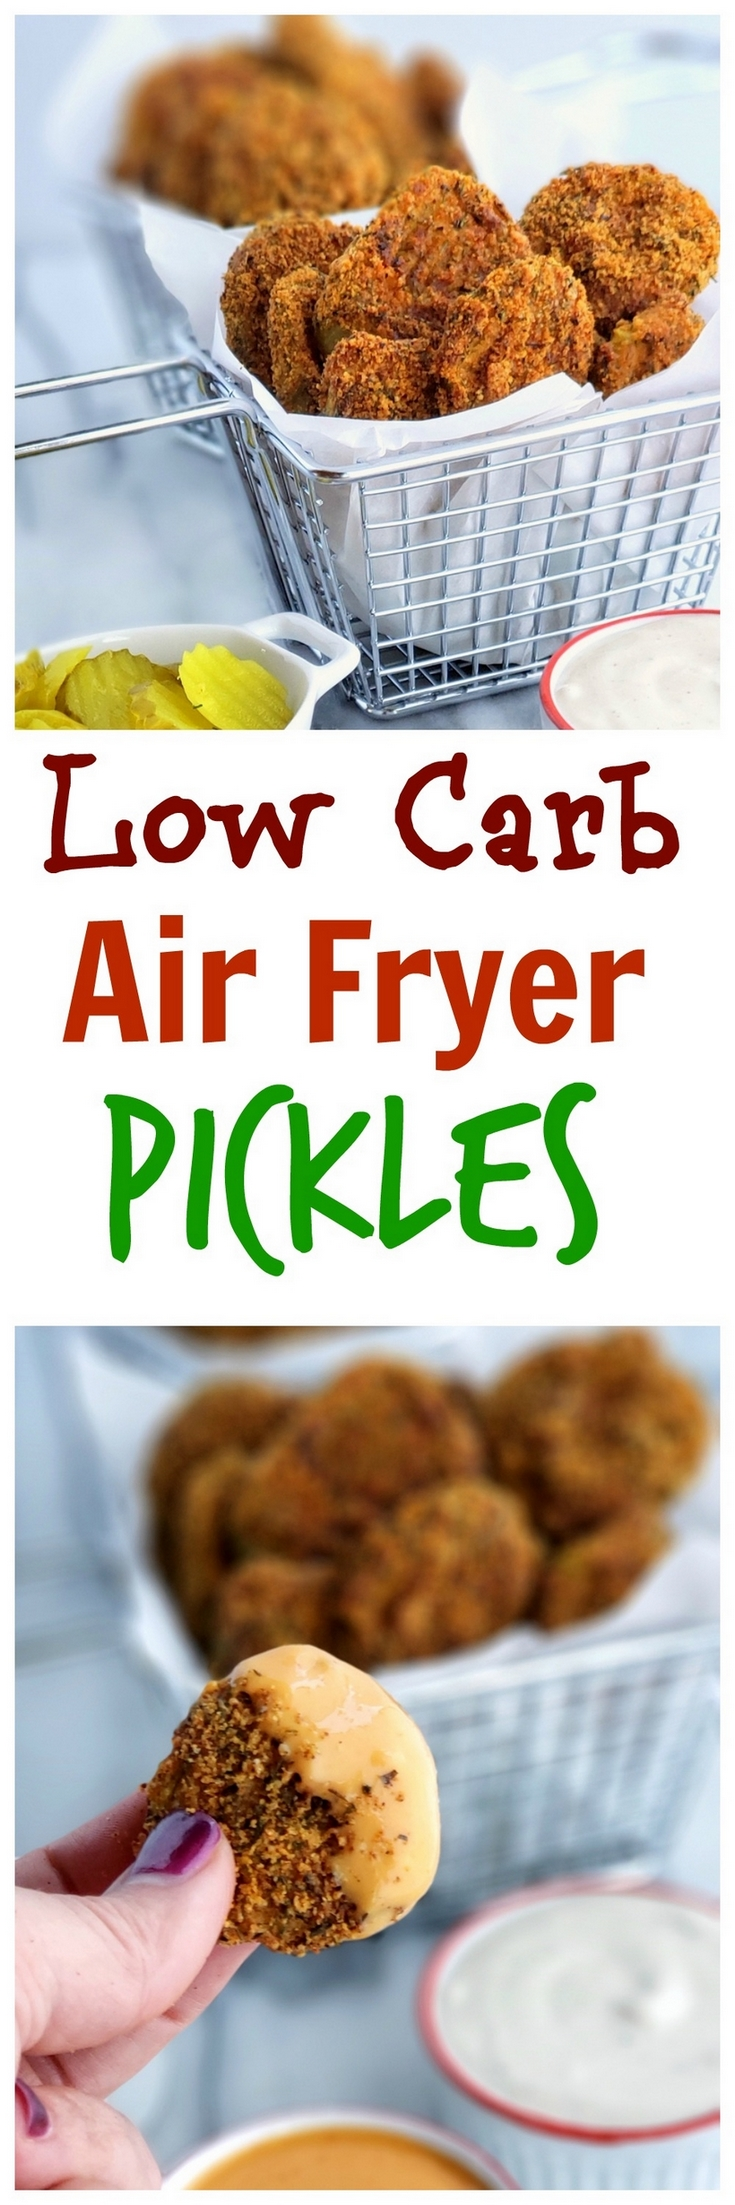 Whip up these Low Carb Air Fryer Pickles in minutes. The perfect guiltless snack for any gathering. #noblepig #lowcarb #keto via @cmpollak1